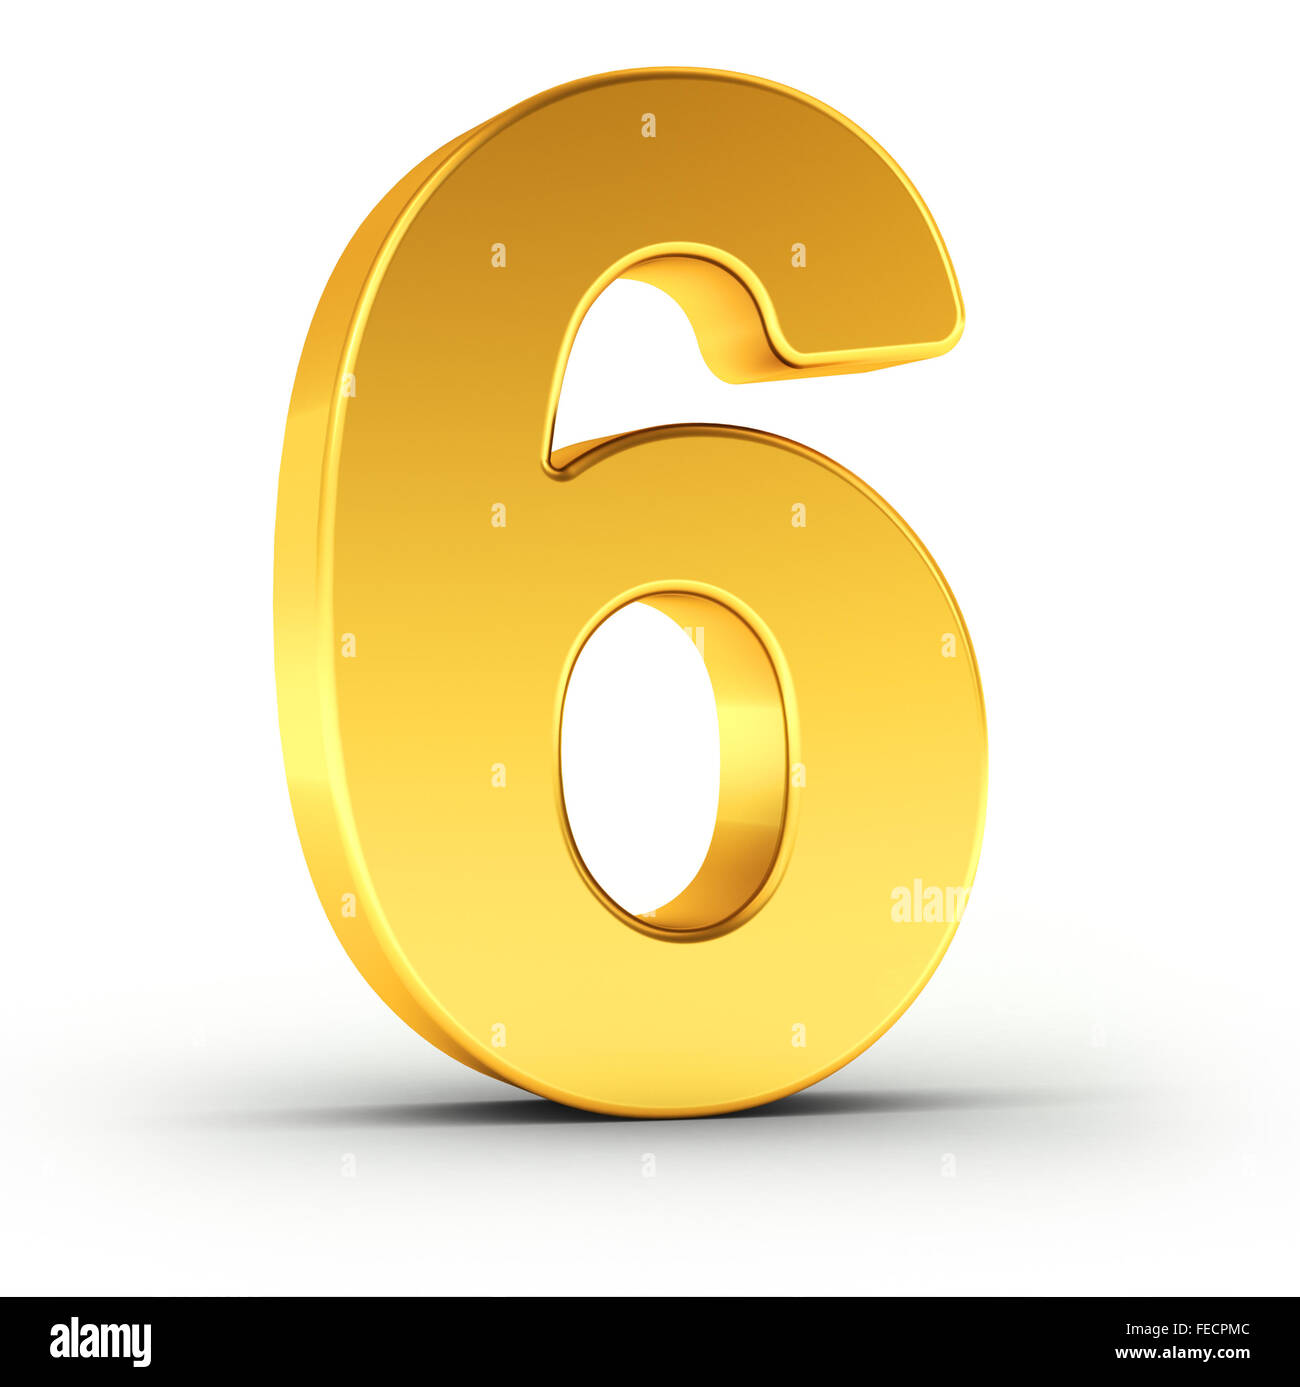 The number six as a polished golden object - Stock Image